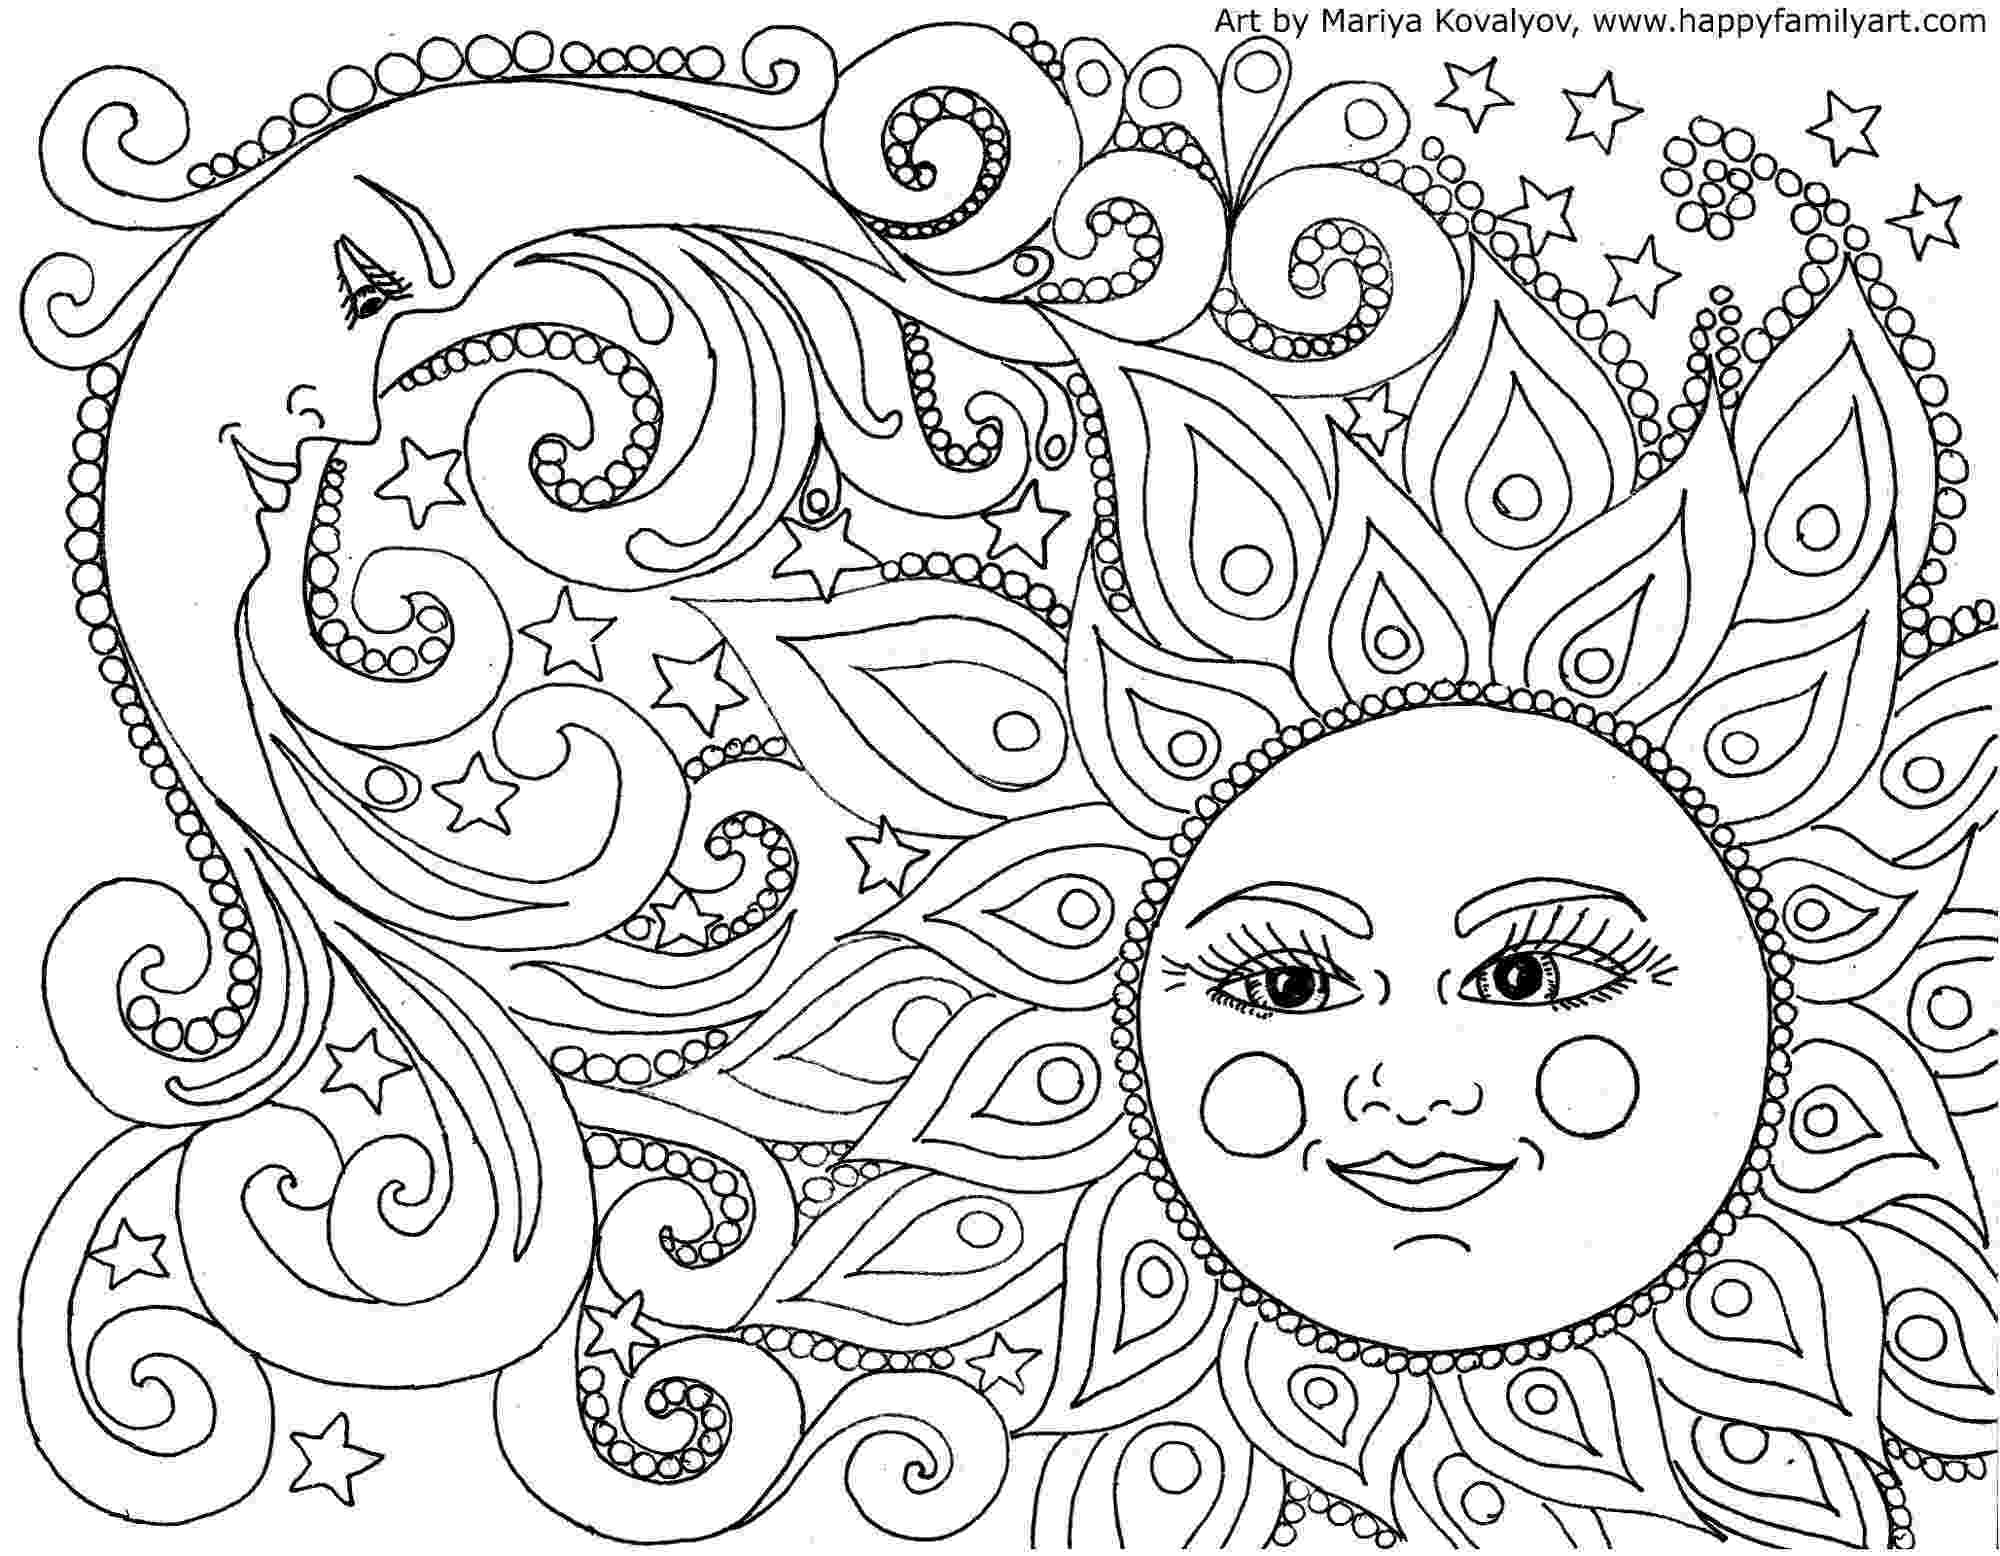 abstract art coloring pages abstract doodle coloring page free printable coloring pages abstract pages coloring art 1 1